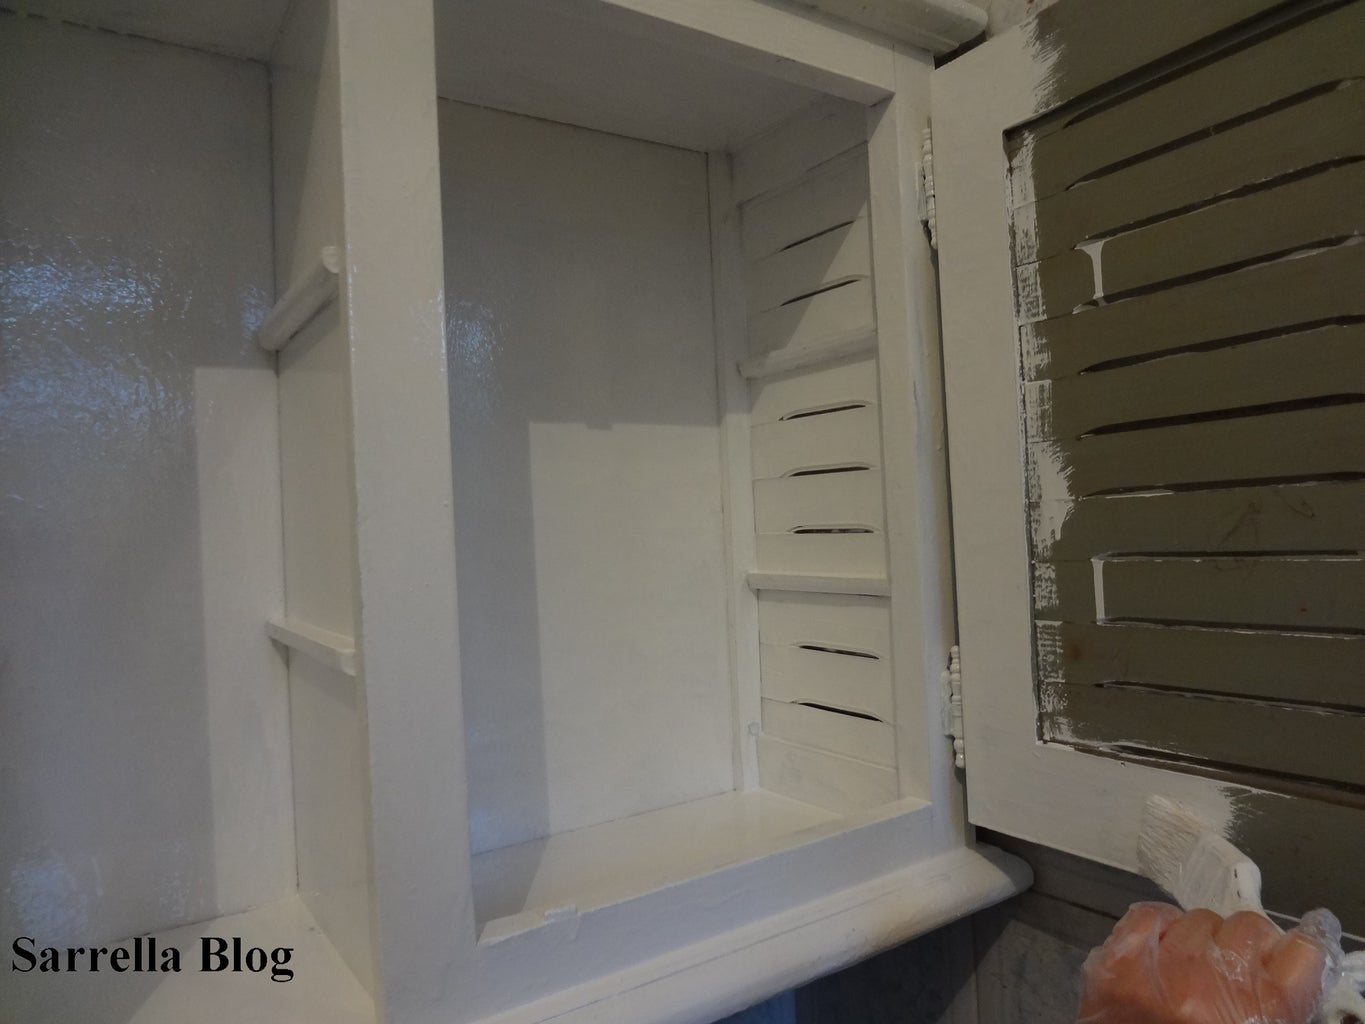 Painting the Inside of the Cabinet